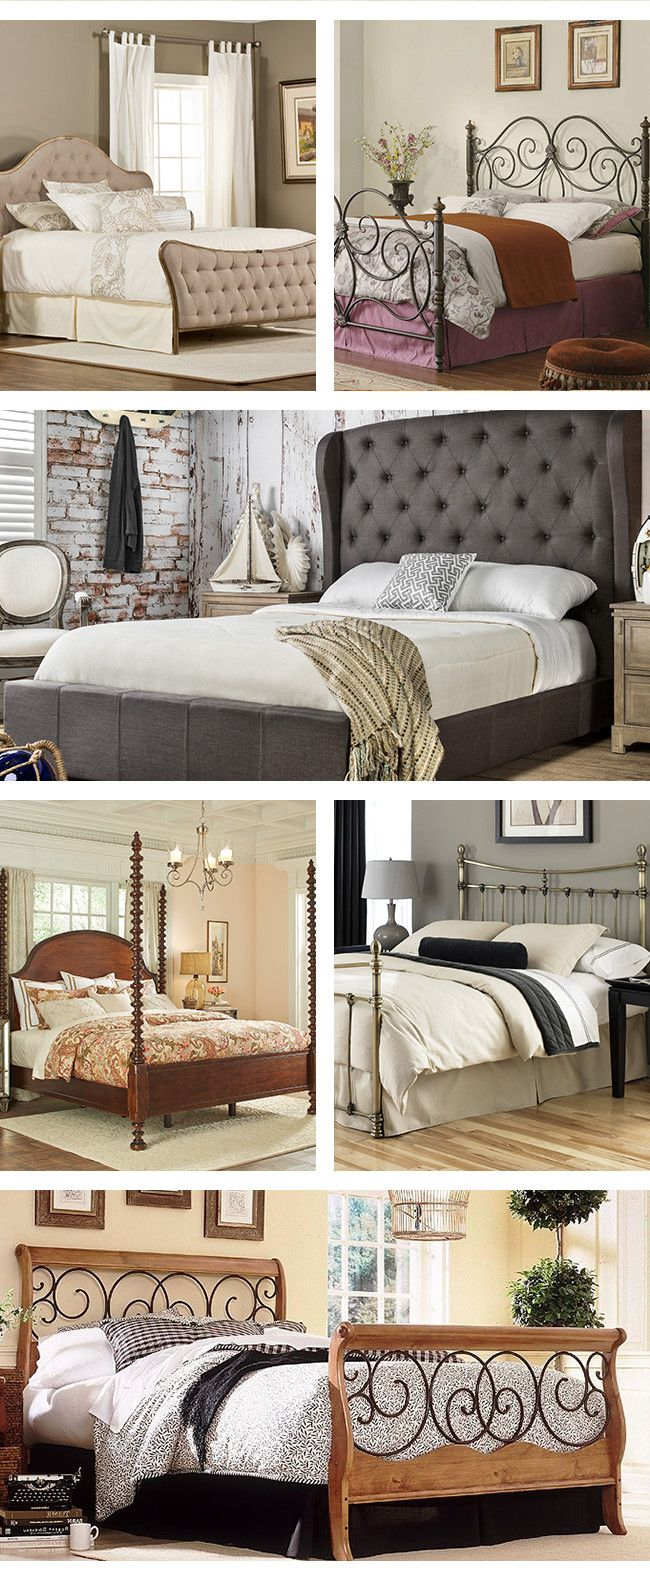 Make your dream bedroom a reality with our incredible selection of